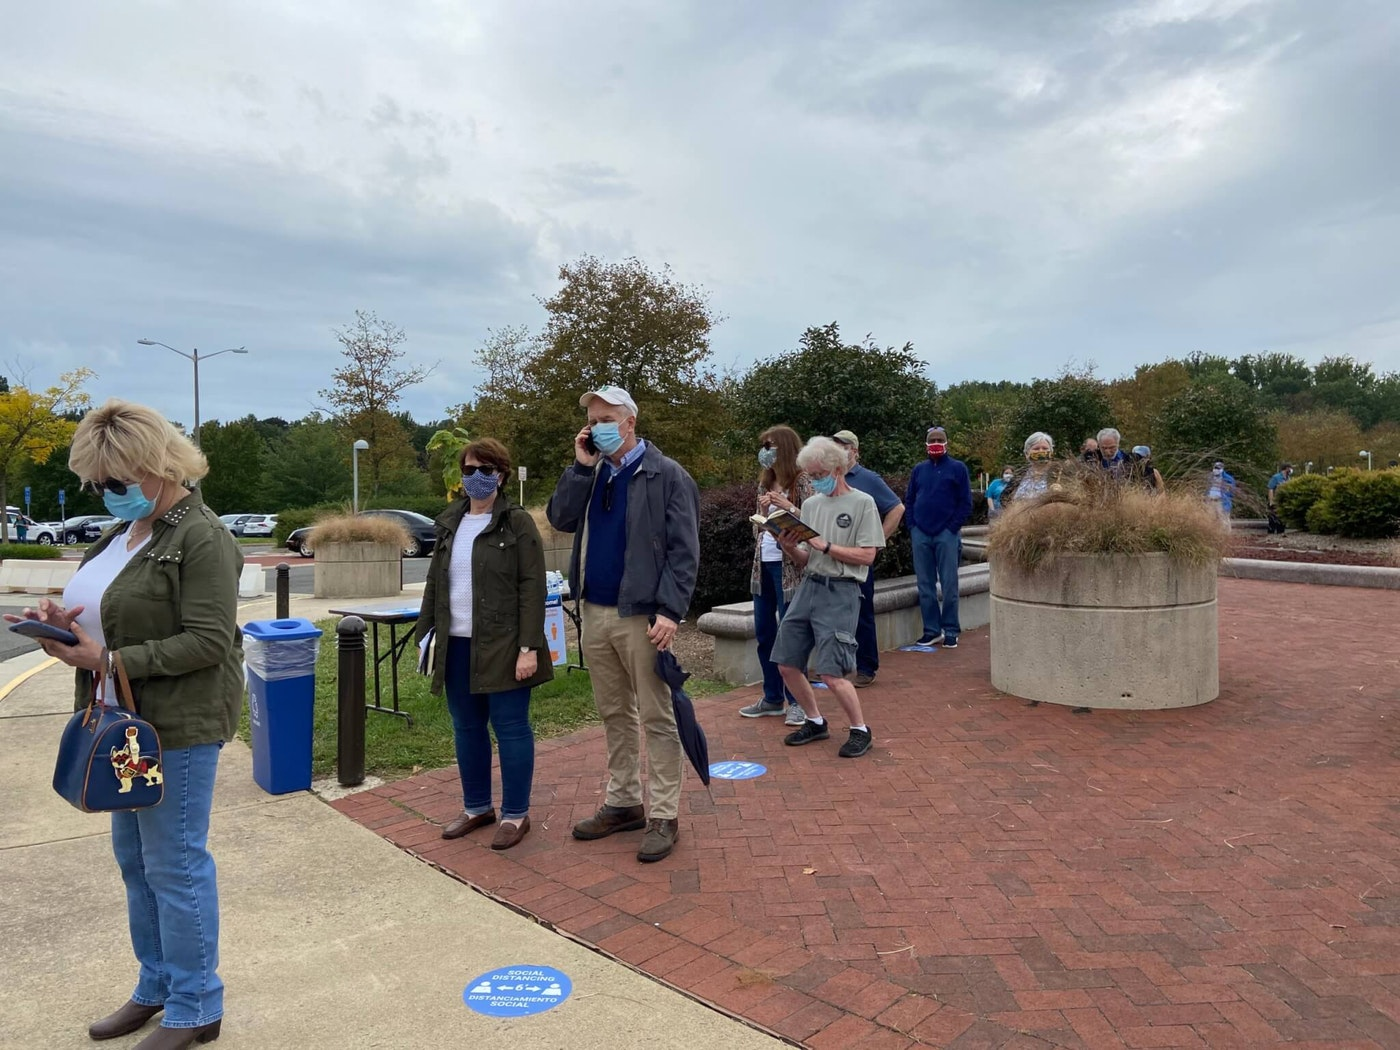 Friday saw one of the biggest turnouts since early voting started in Fairfax County.